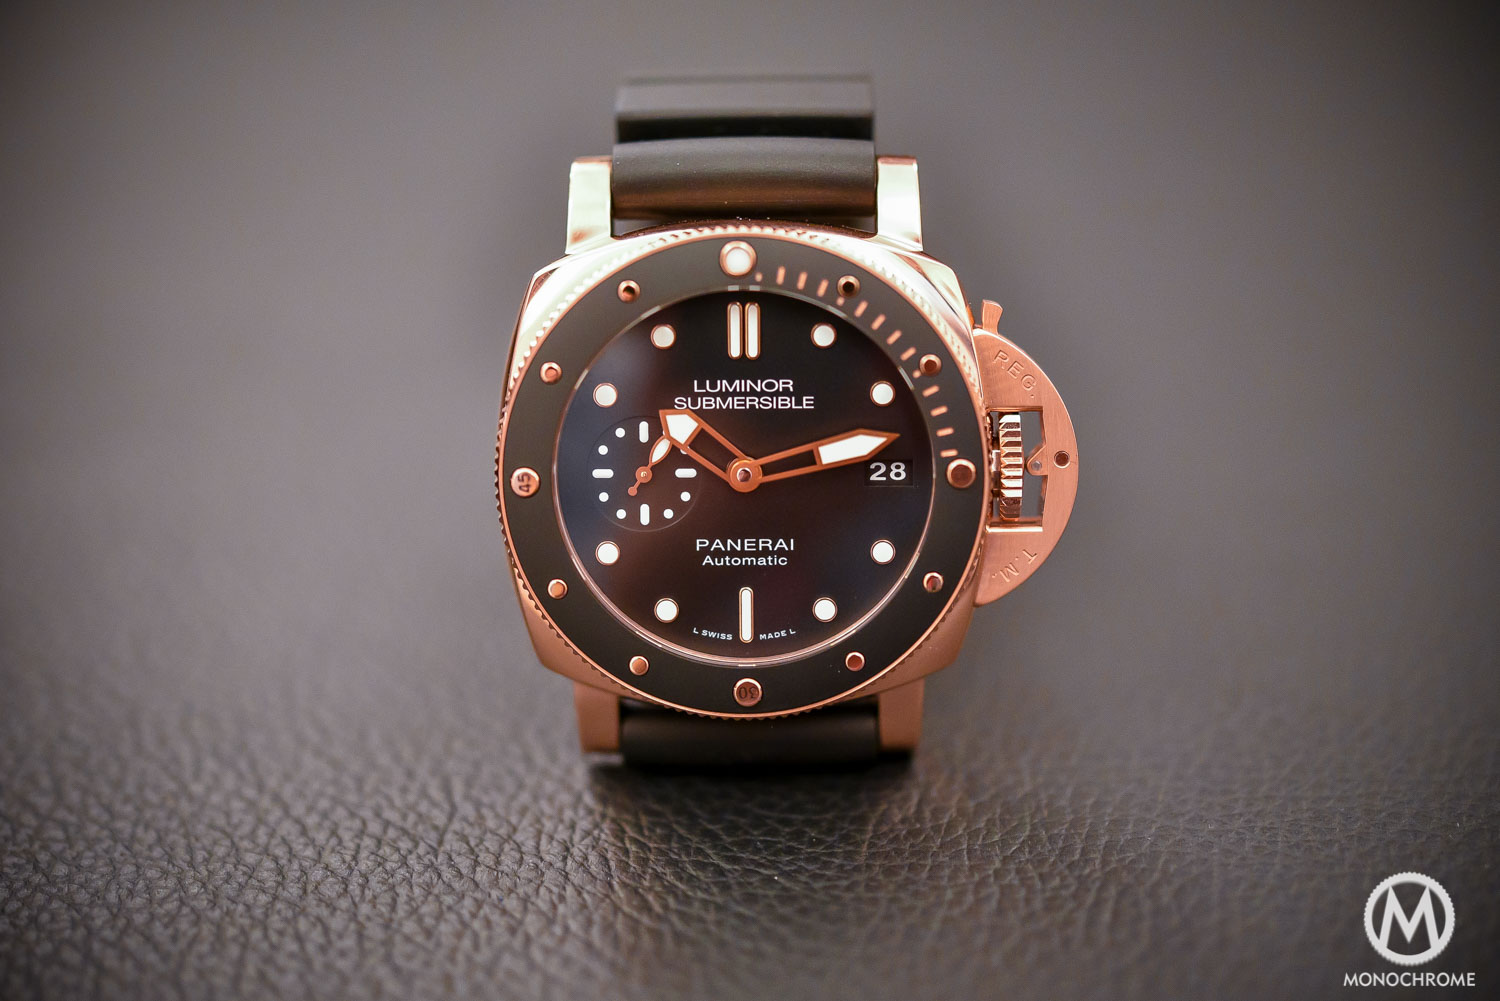 aesthetics series you over elegant replica two crown bridge couple gold watches choose fake red line the panerai with carries perfect are luminor three classic design for due in kinds of